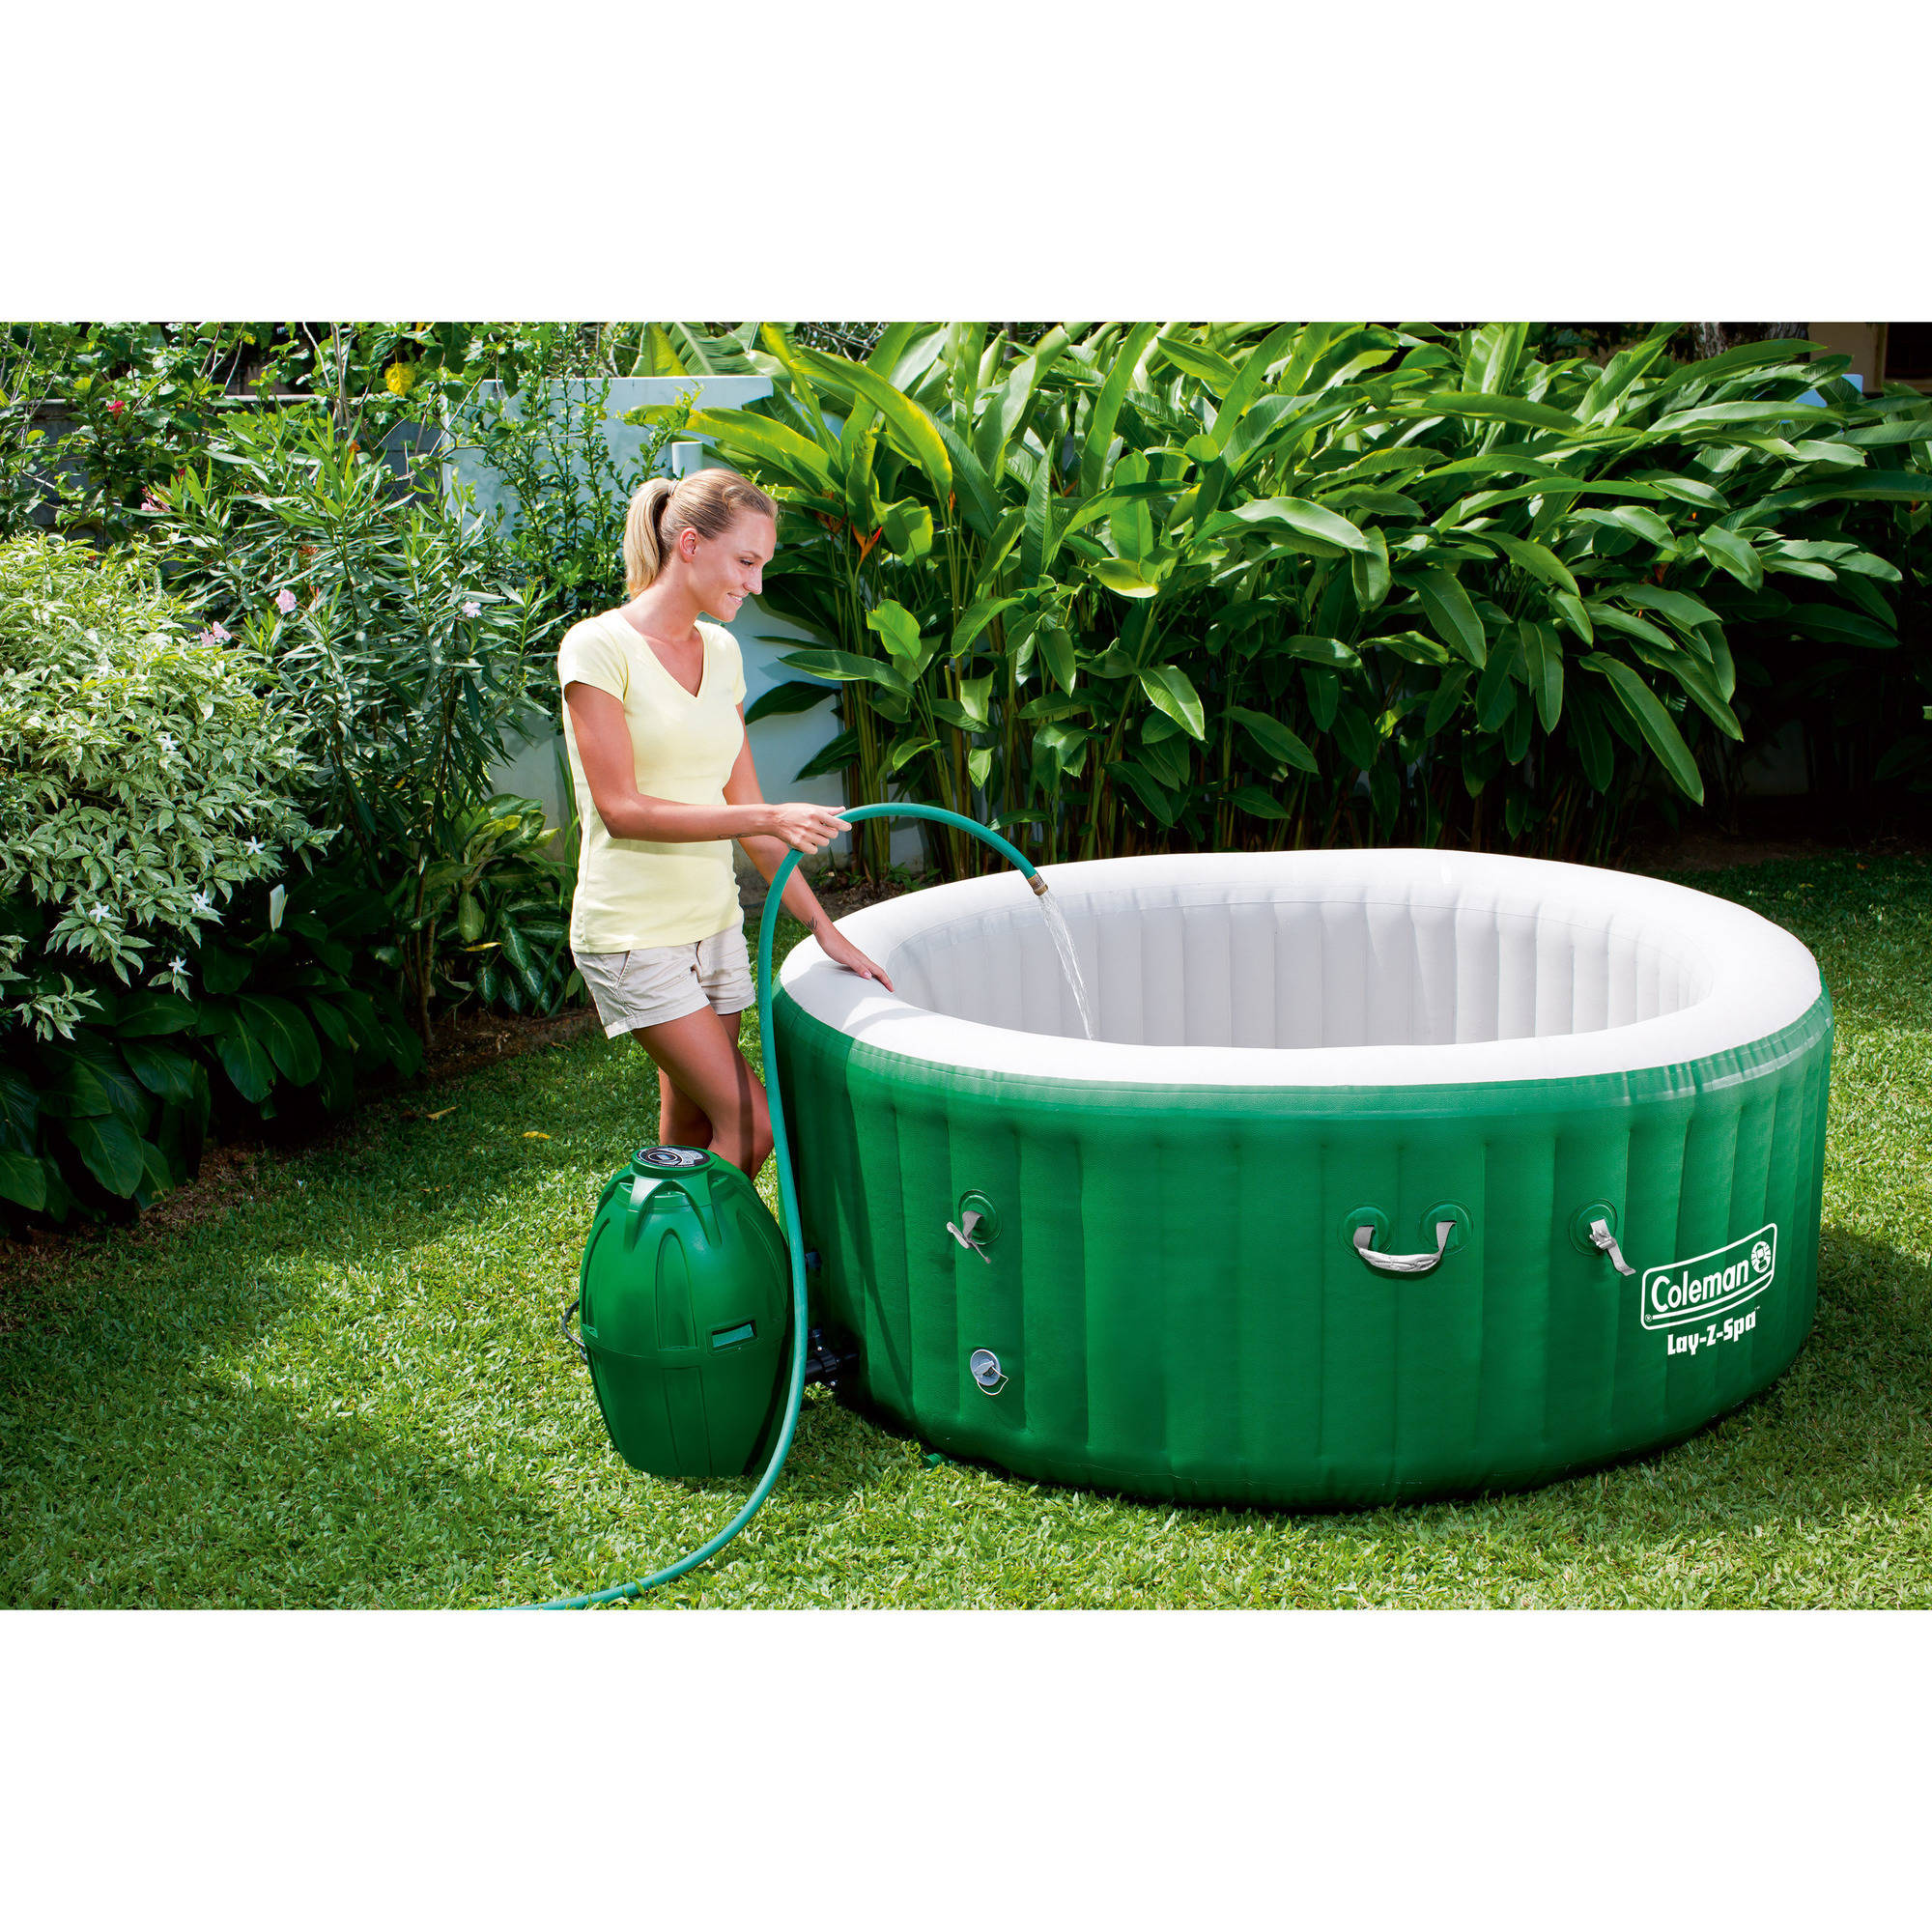 Coleman lay z spa inflatable hot tub bubble jacuzzi set for Types of hot tubs